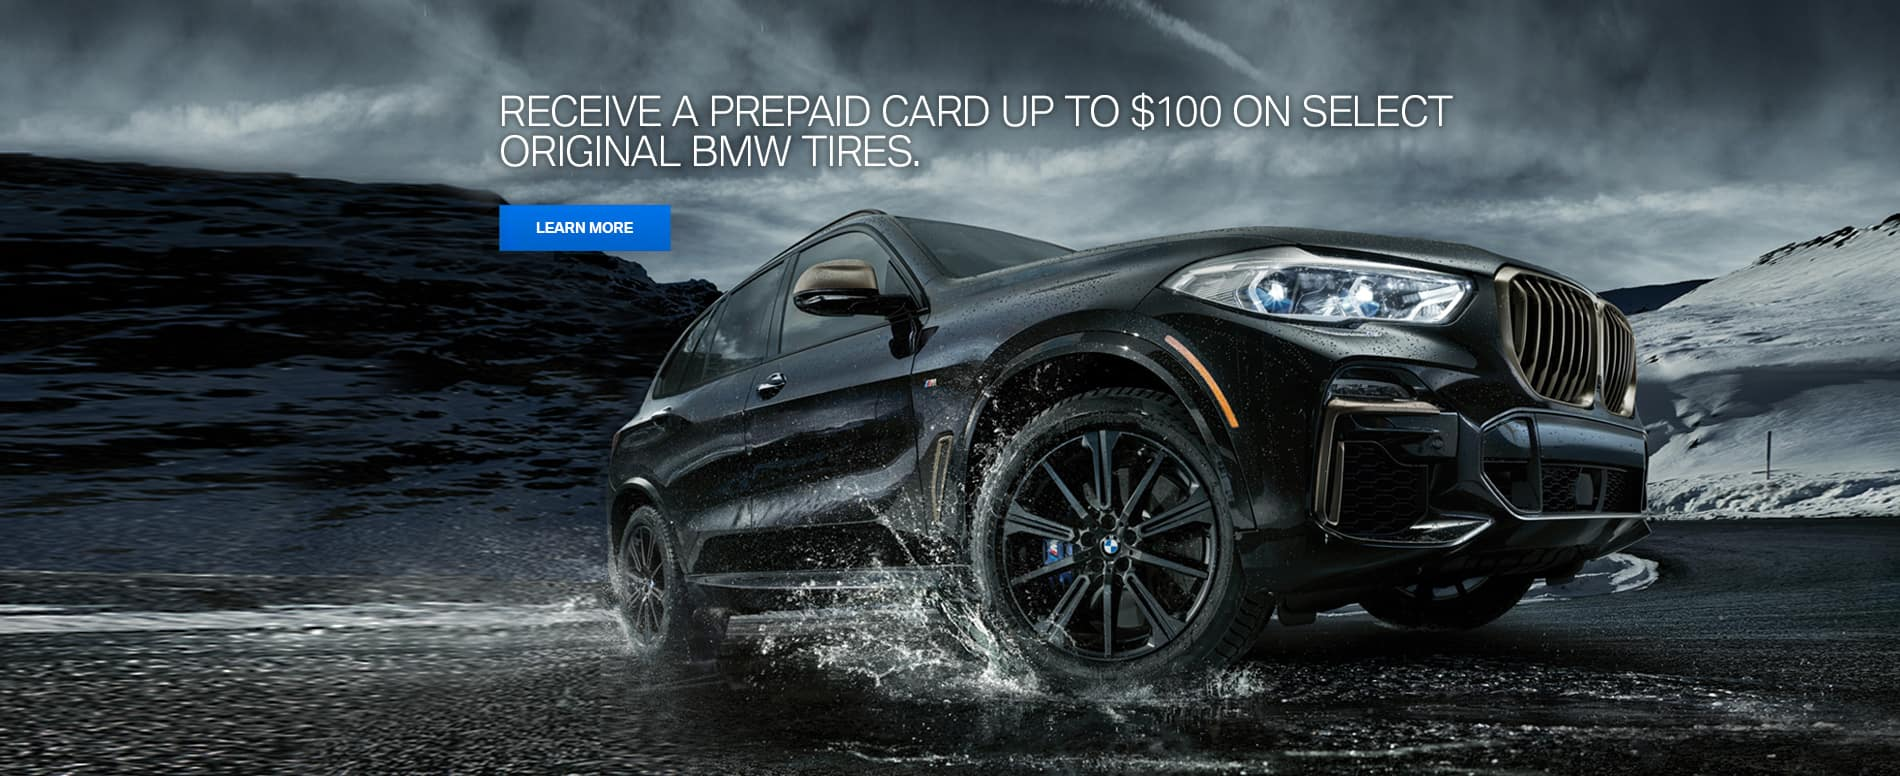 Three quarter view of a black BMW X5 with BMW Performance Star Spoke Style 748 M Jet Black Matte wheels rolling through a puddle creating a splash of water.